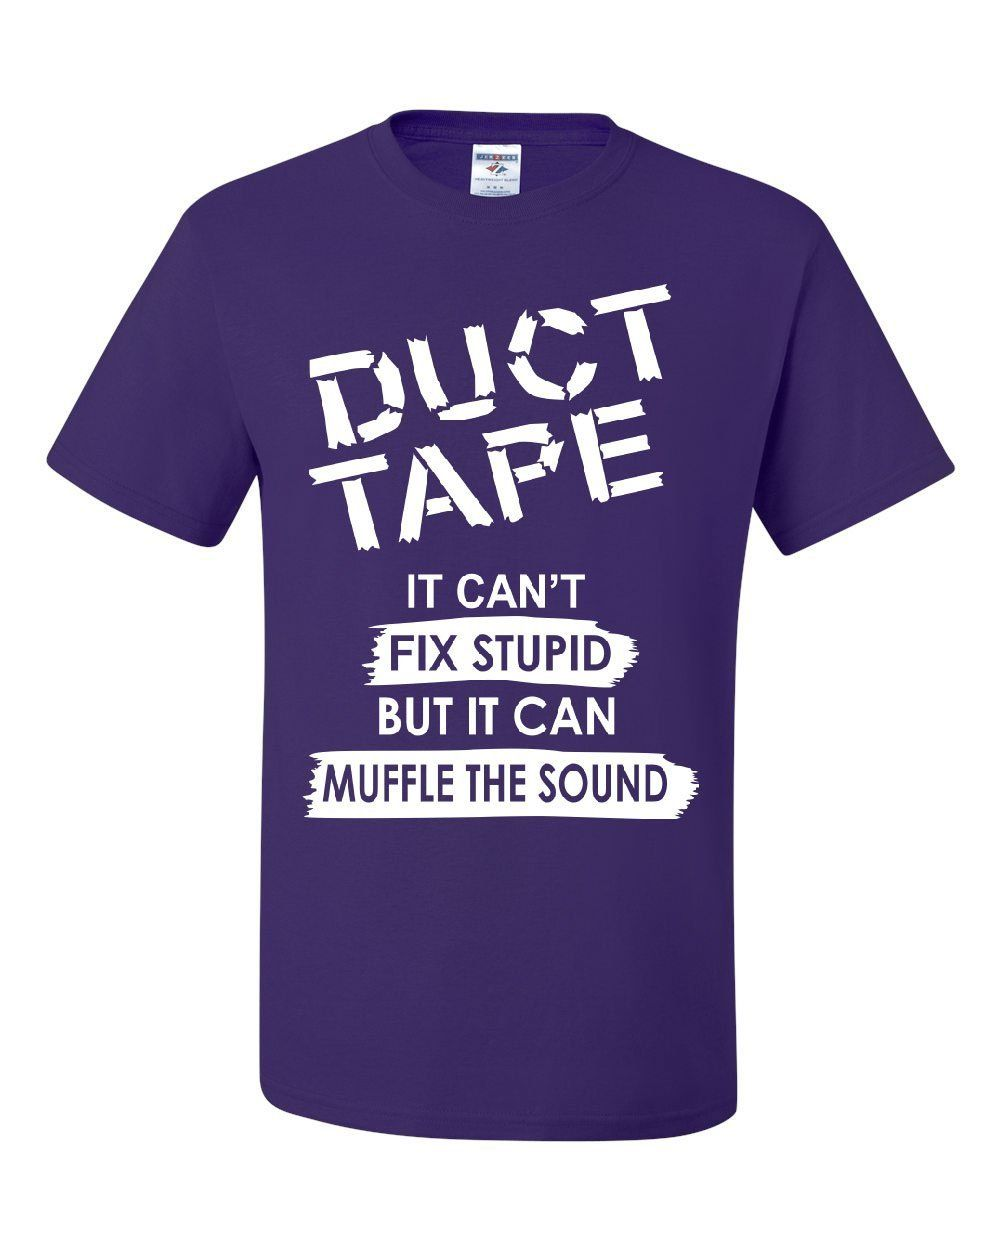 060e6928a Duct Tape It Can't Fix Stupid T-Shirt Offensive Humor Sarcastic Tee Shirt